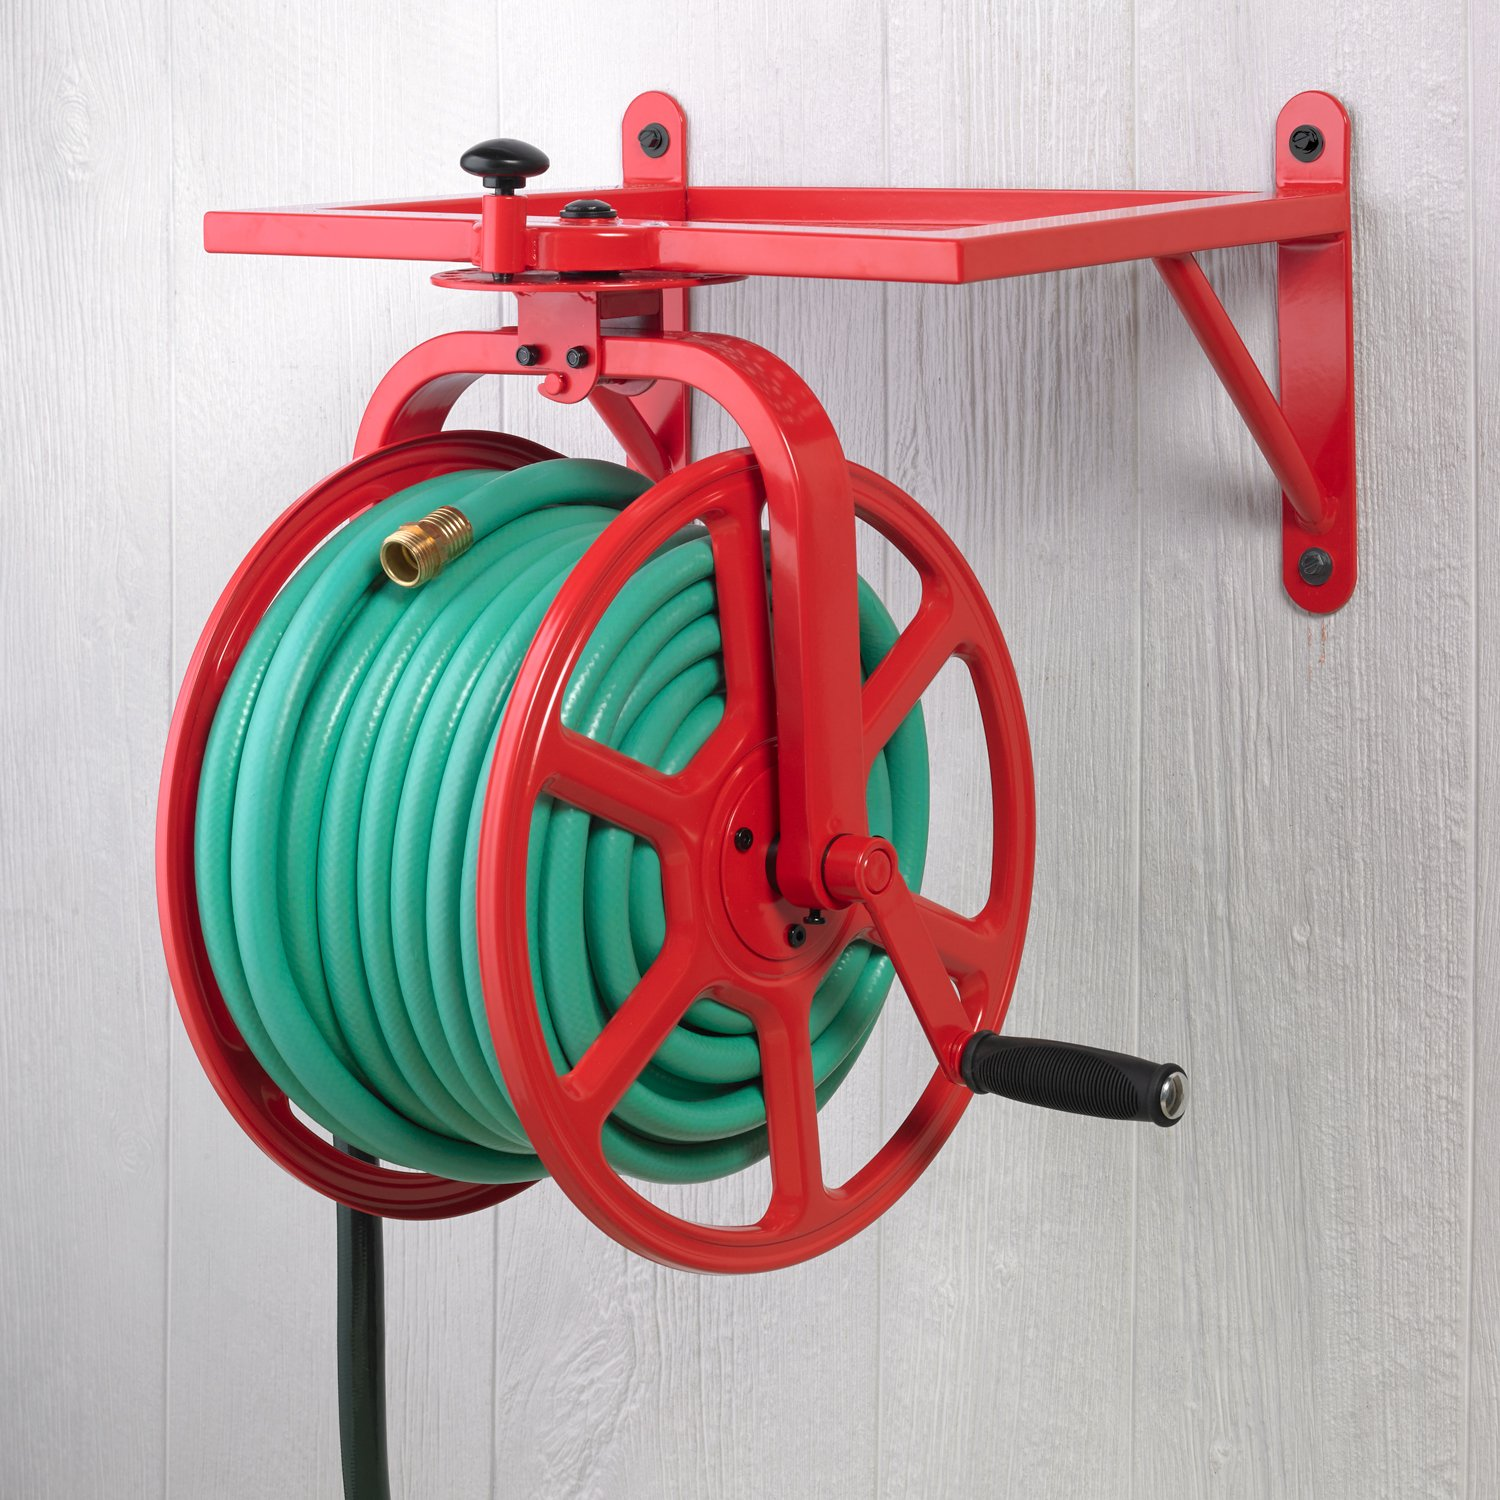 Merveilleux Liberty Garden 713 Revolution Multi Directional Hose Reel, Red: Amazon.ca:  Patio, Lawn U0026 Garden